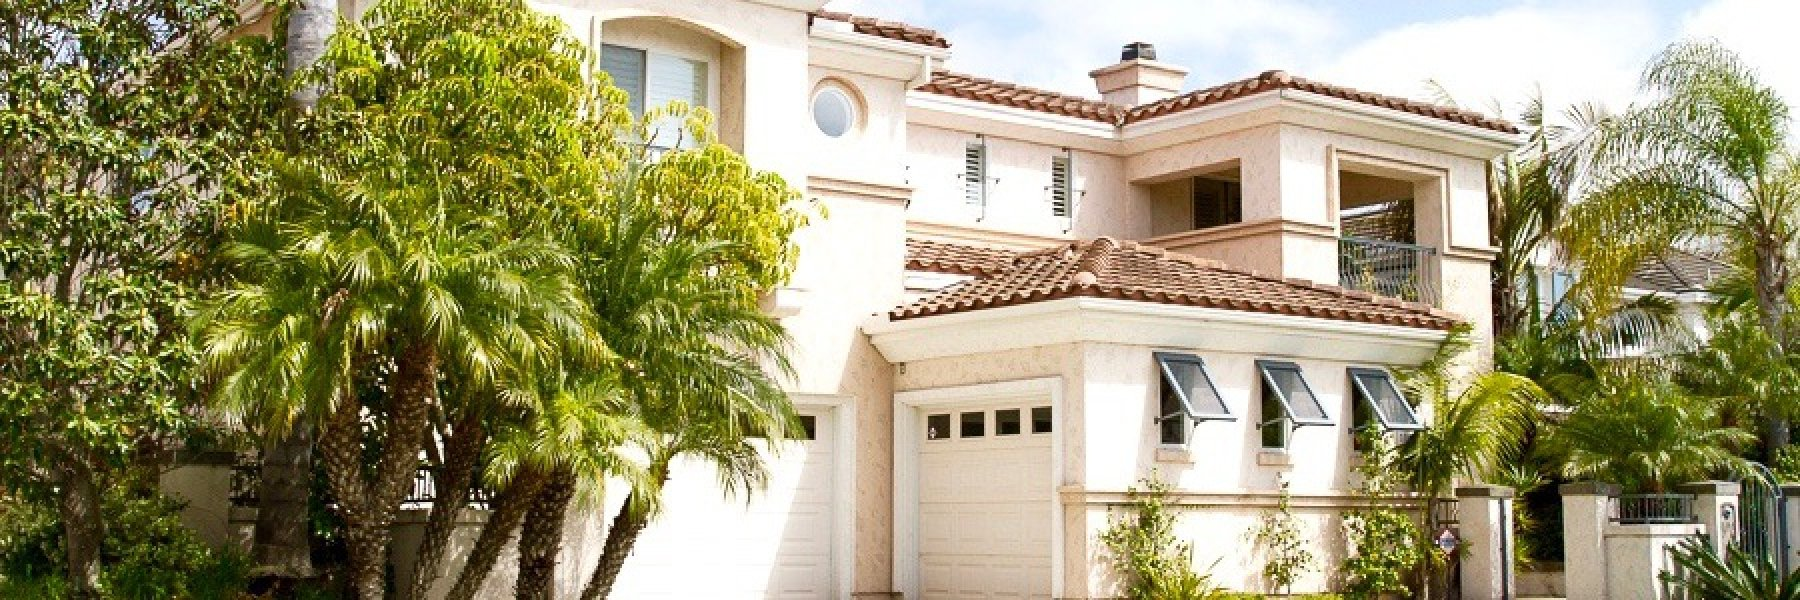 Belmont is a community of homes in San Diego California